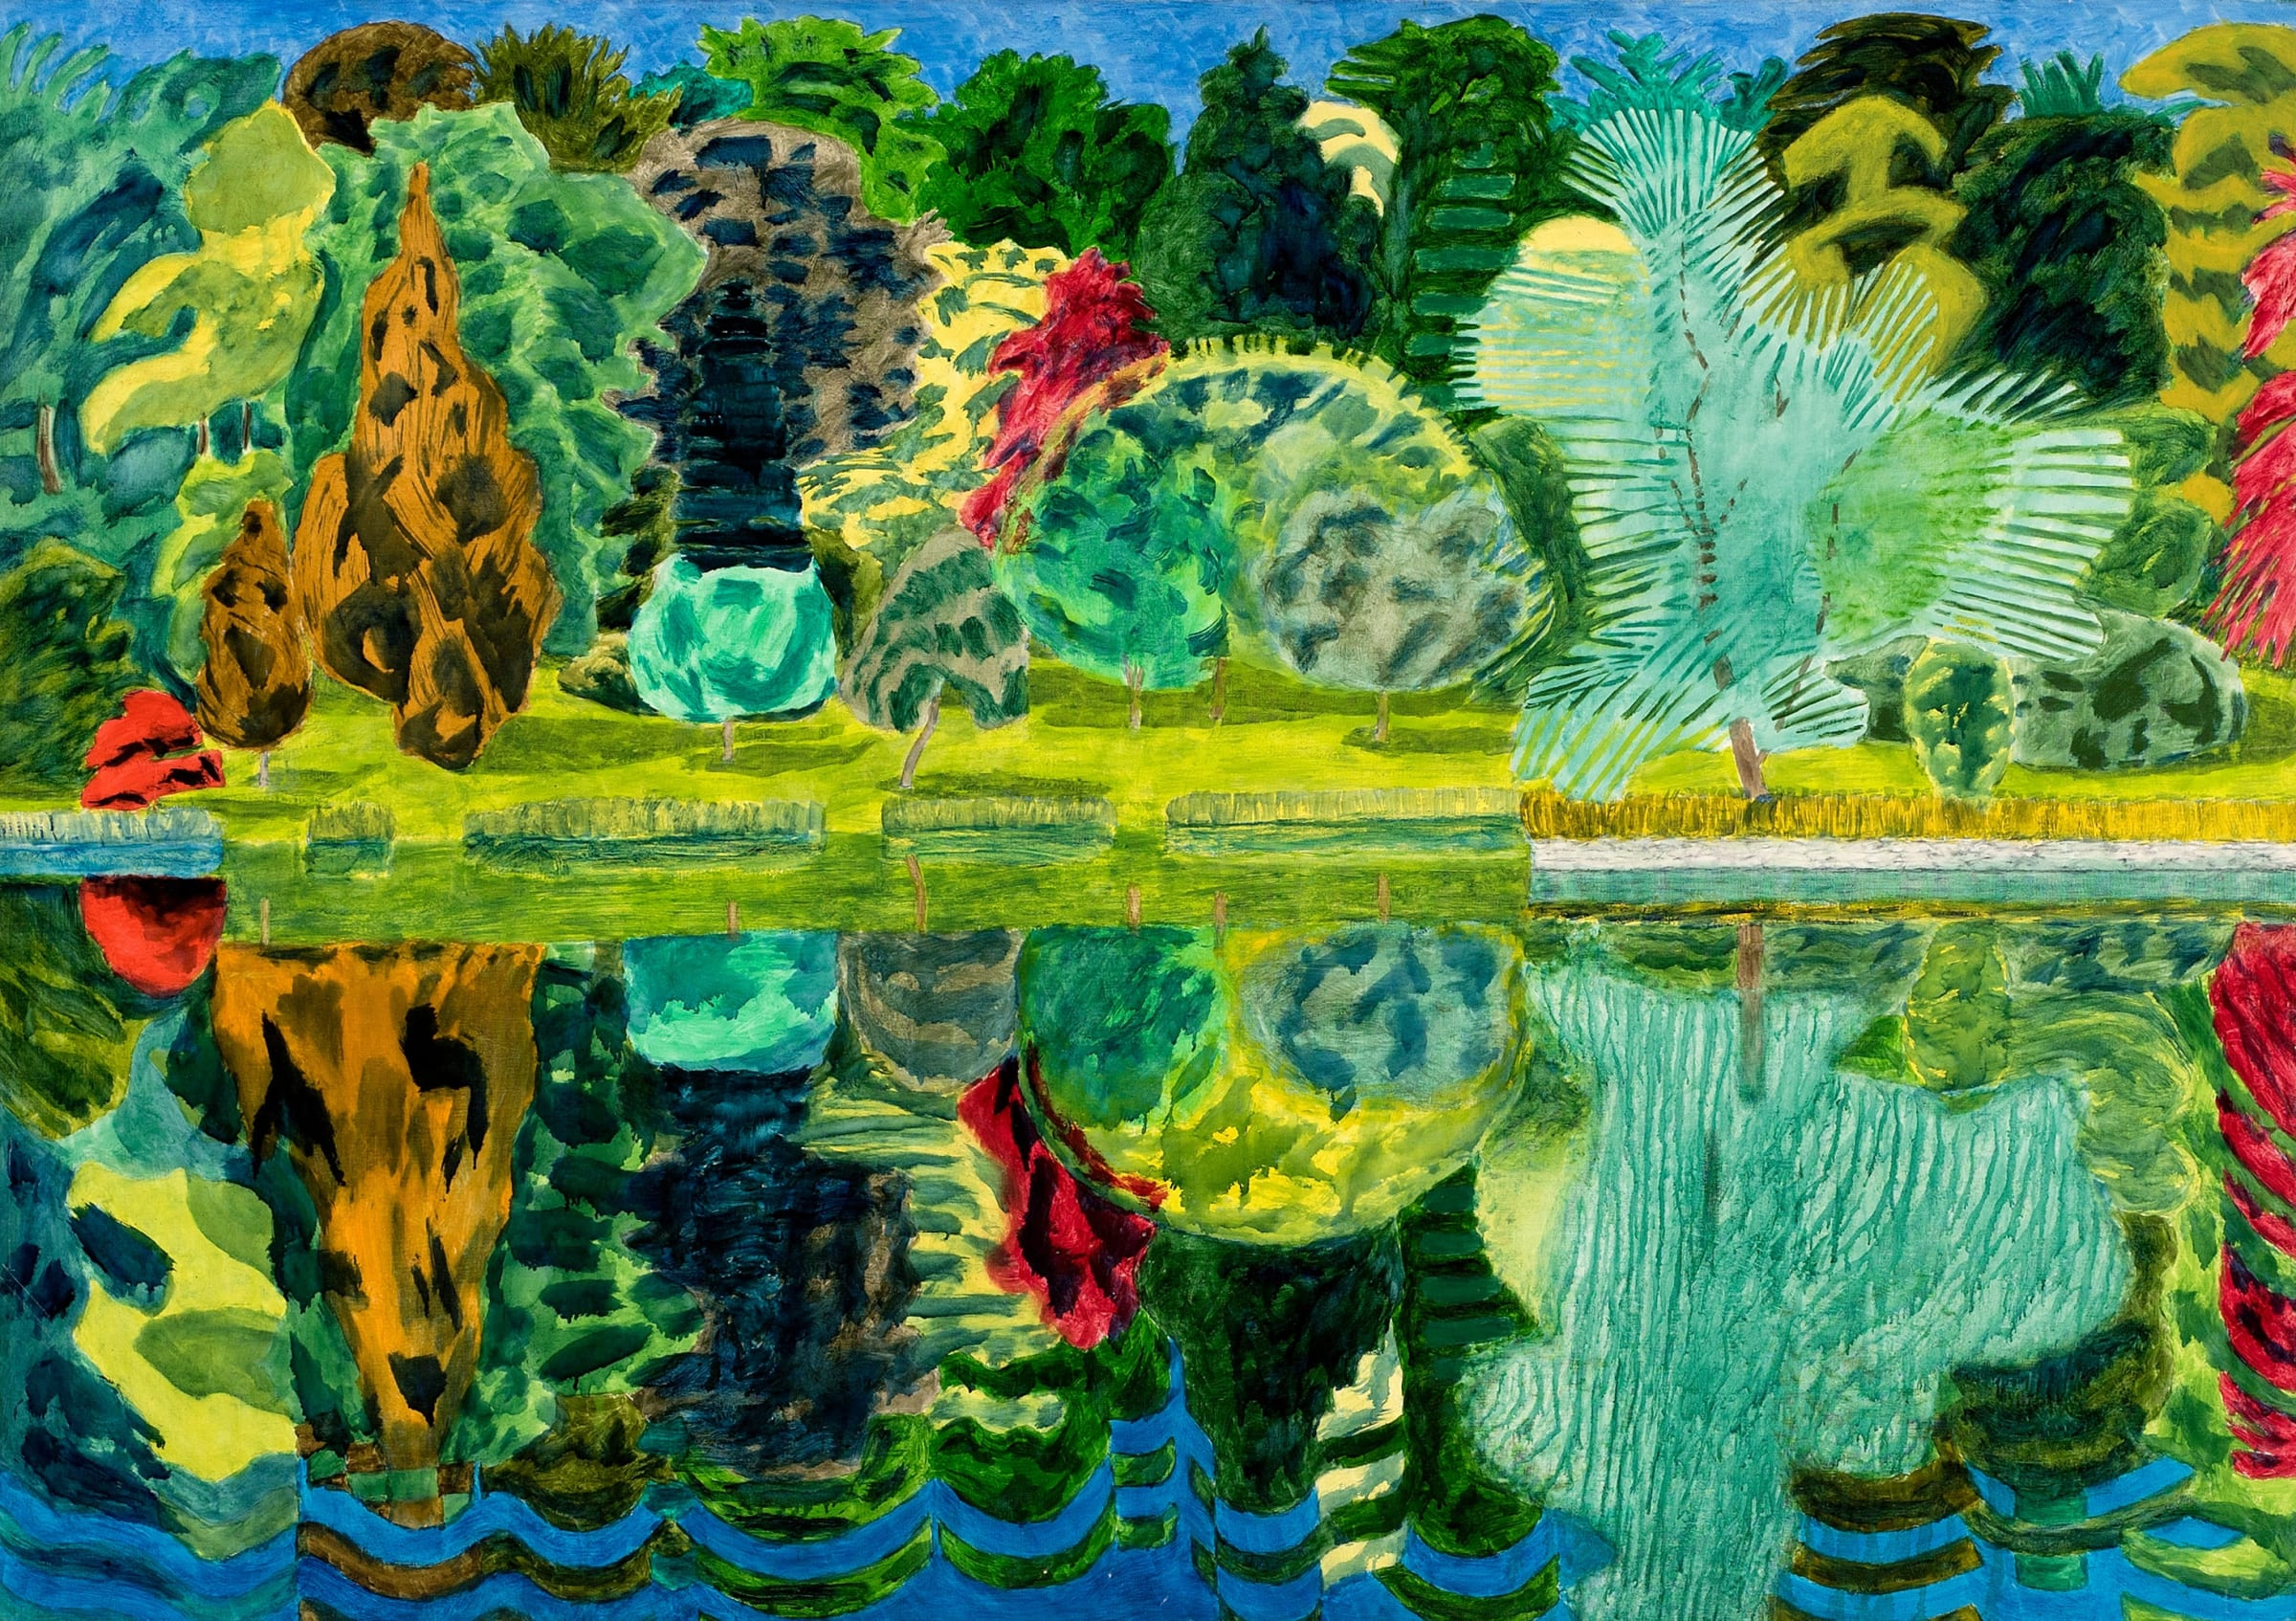 """<span class=""""link fancybox-details-link""""><a href=""""/exhibitions/12/works/image284/"""">View Detail Page</a></span><p><strong>Adrian Berg RA (1929-2011)</strong></p><p>Stourhead, 24th June</p><p>1992, oil on canvas, 132 x 188cm</p>"""